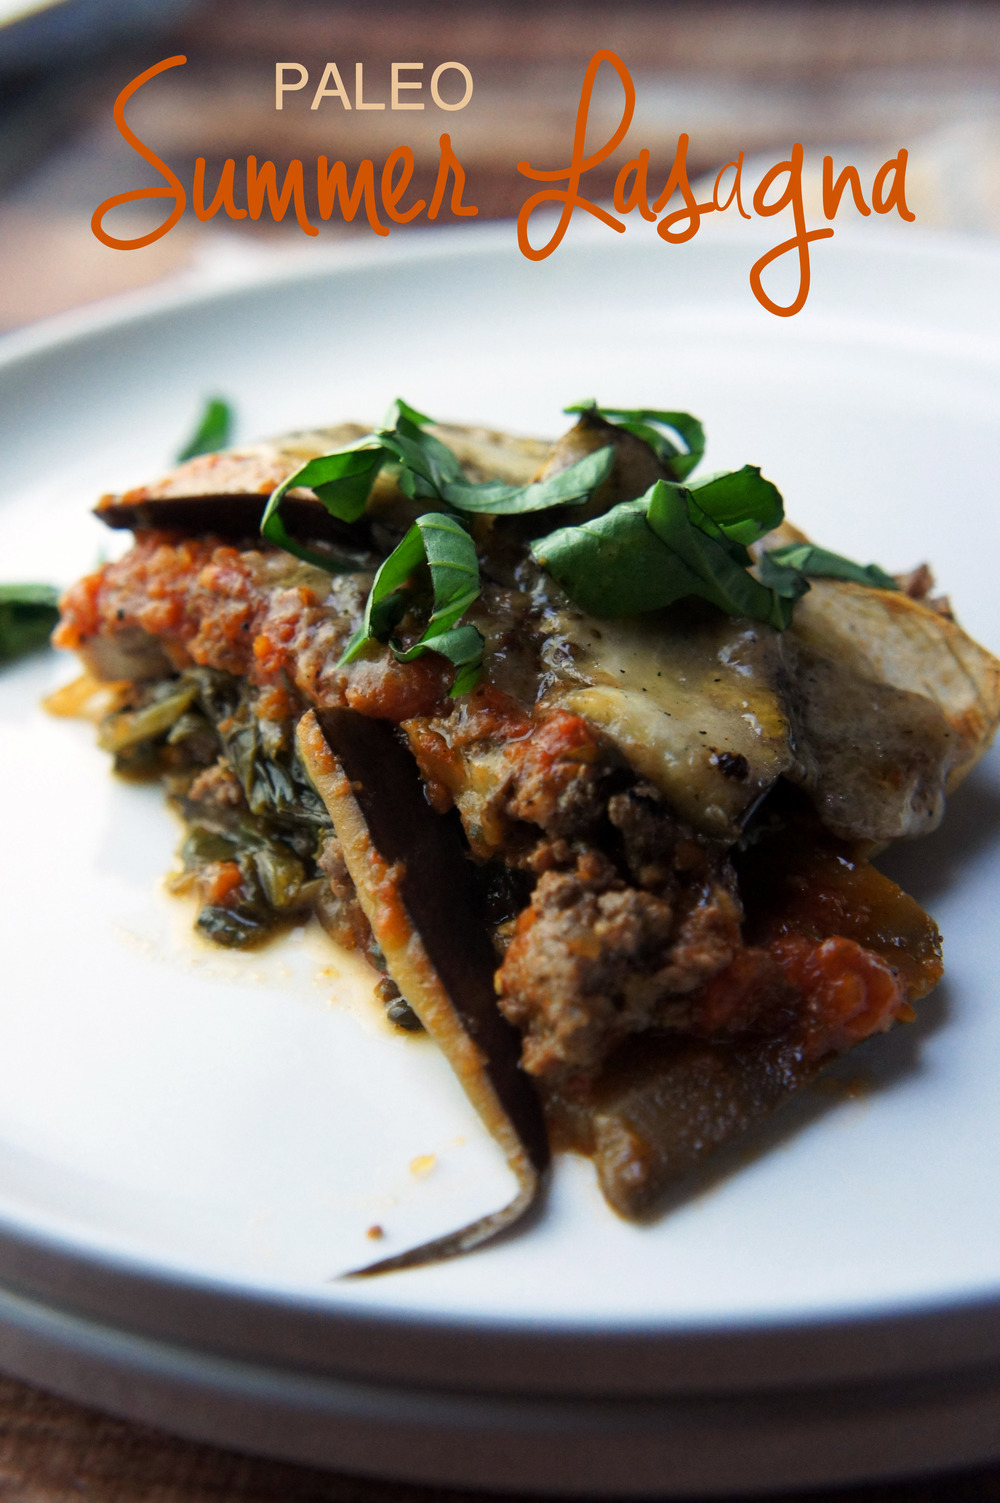 Summer Vegetable Lasagna (paleo and gluten free!)